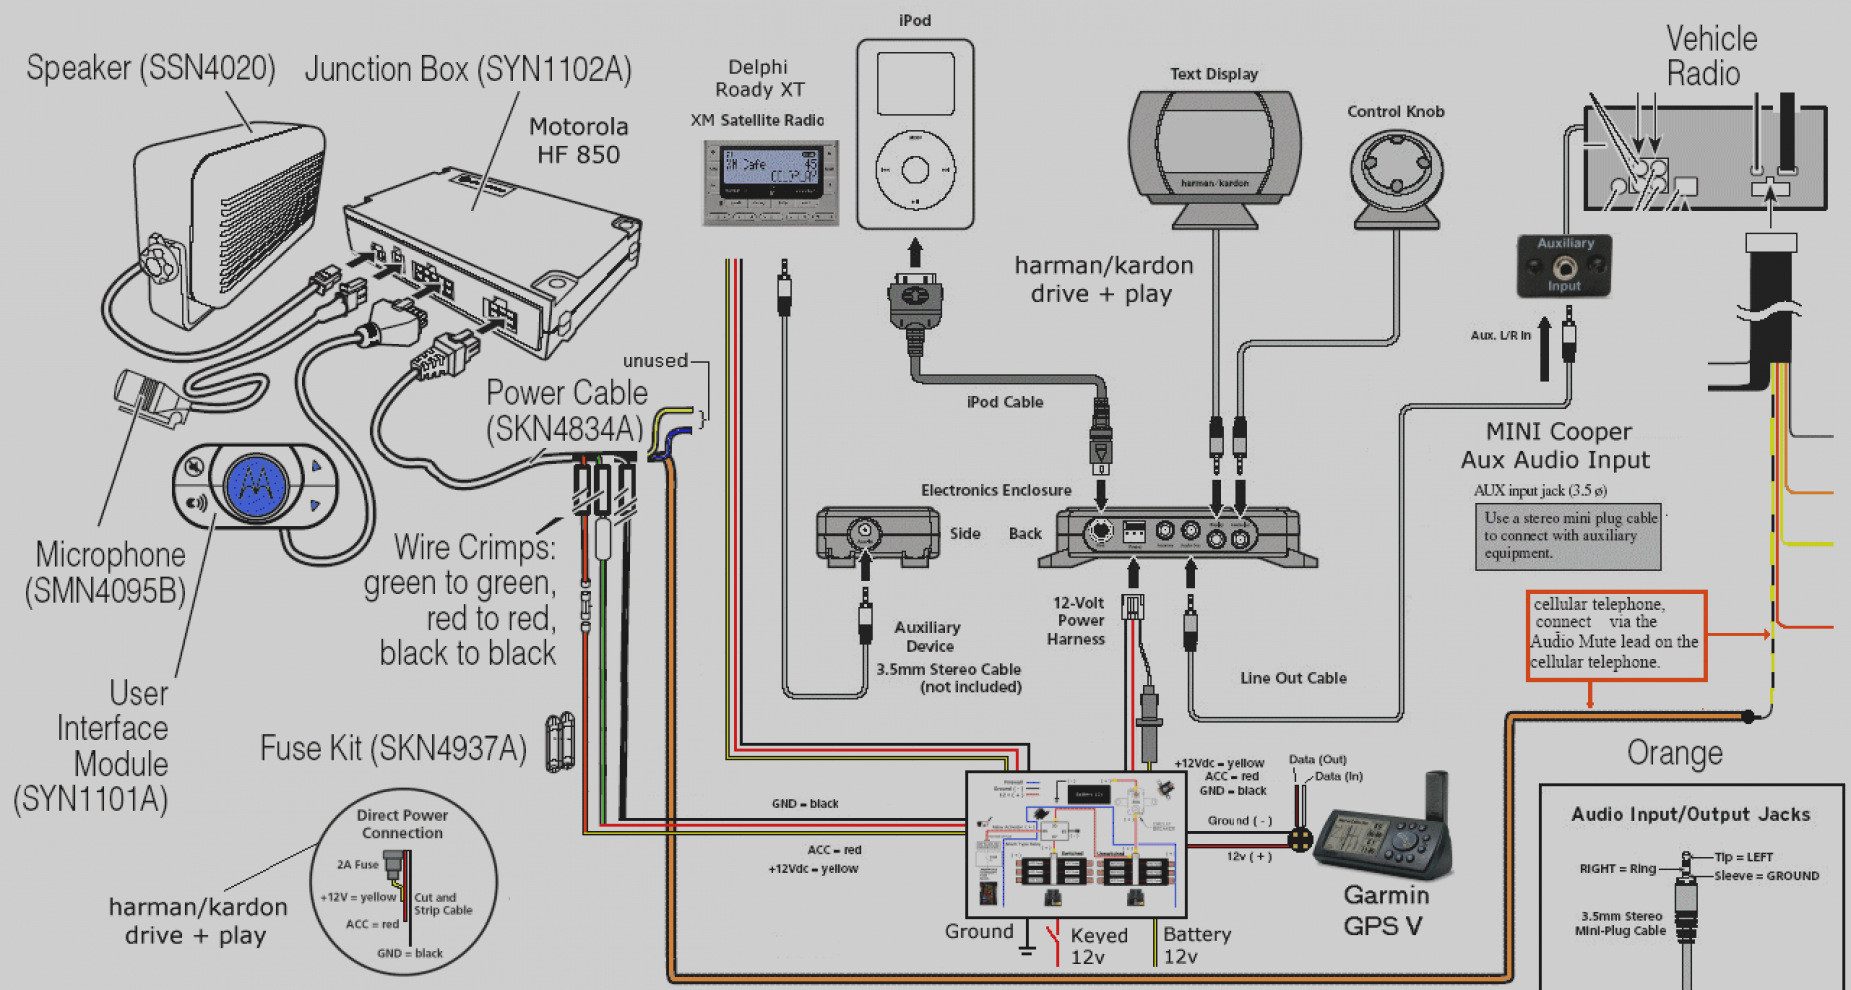 Garmin Marine Chartplotter Wiring Diagram Free Download Gps 2006c 740 Diagrams U2022 Rh Sleeperfurniture Co Gpsmap